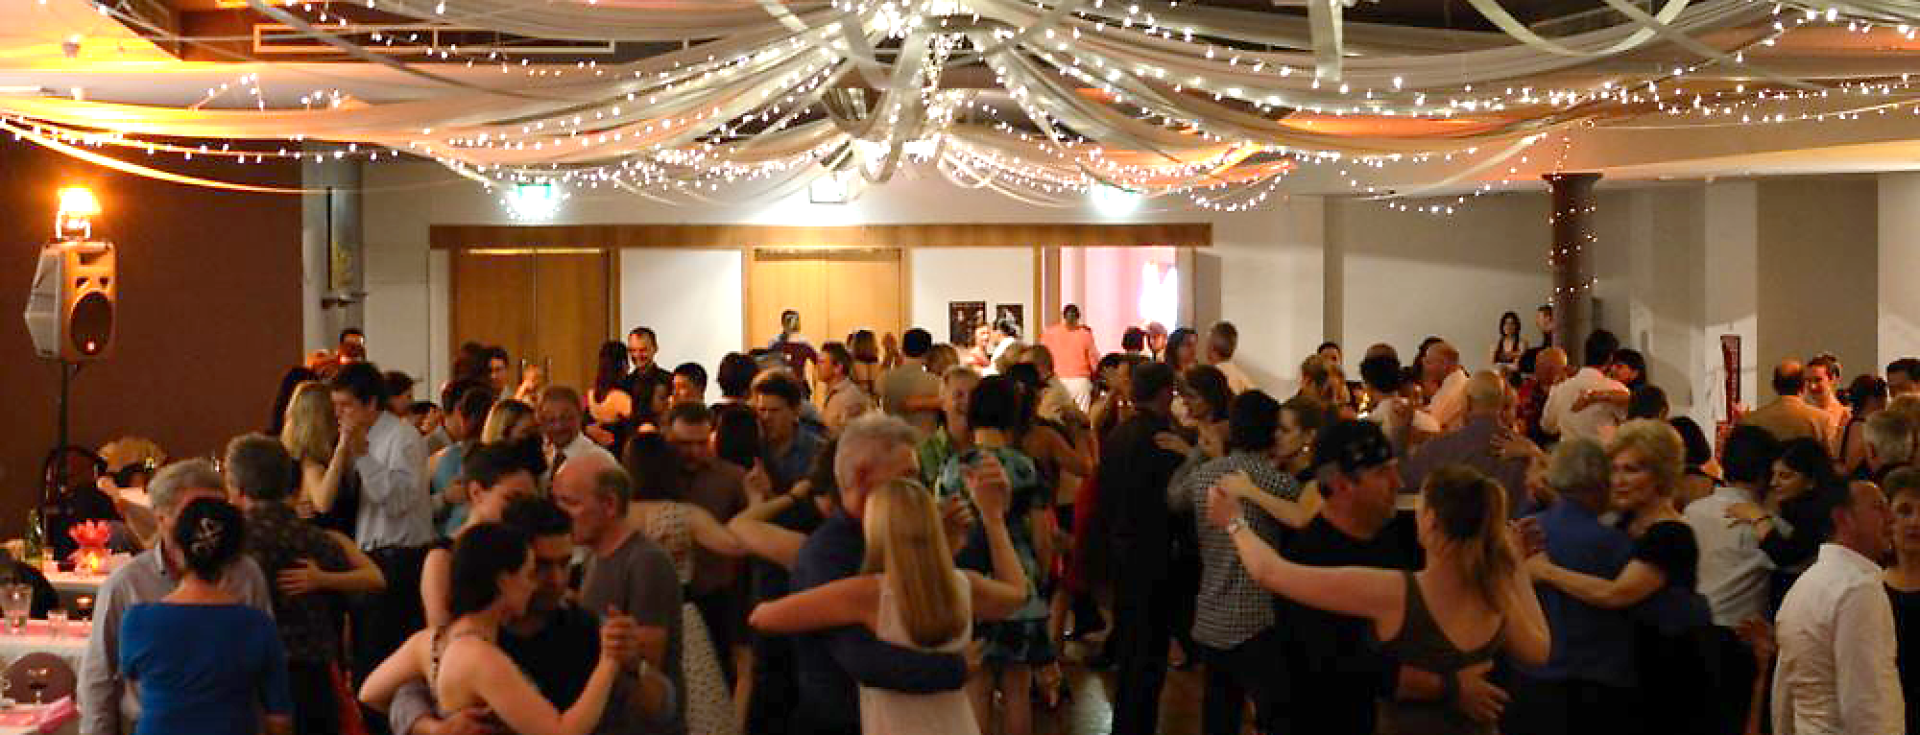 Tango in the Spring 29 SEPT - 2 OCT 2018